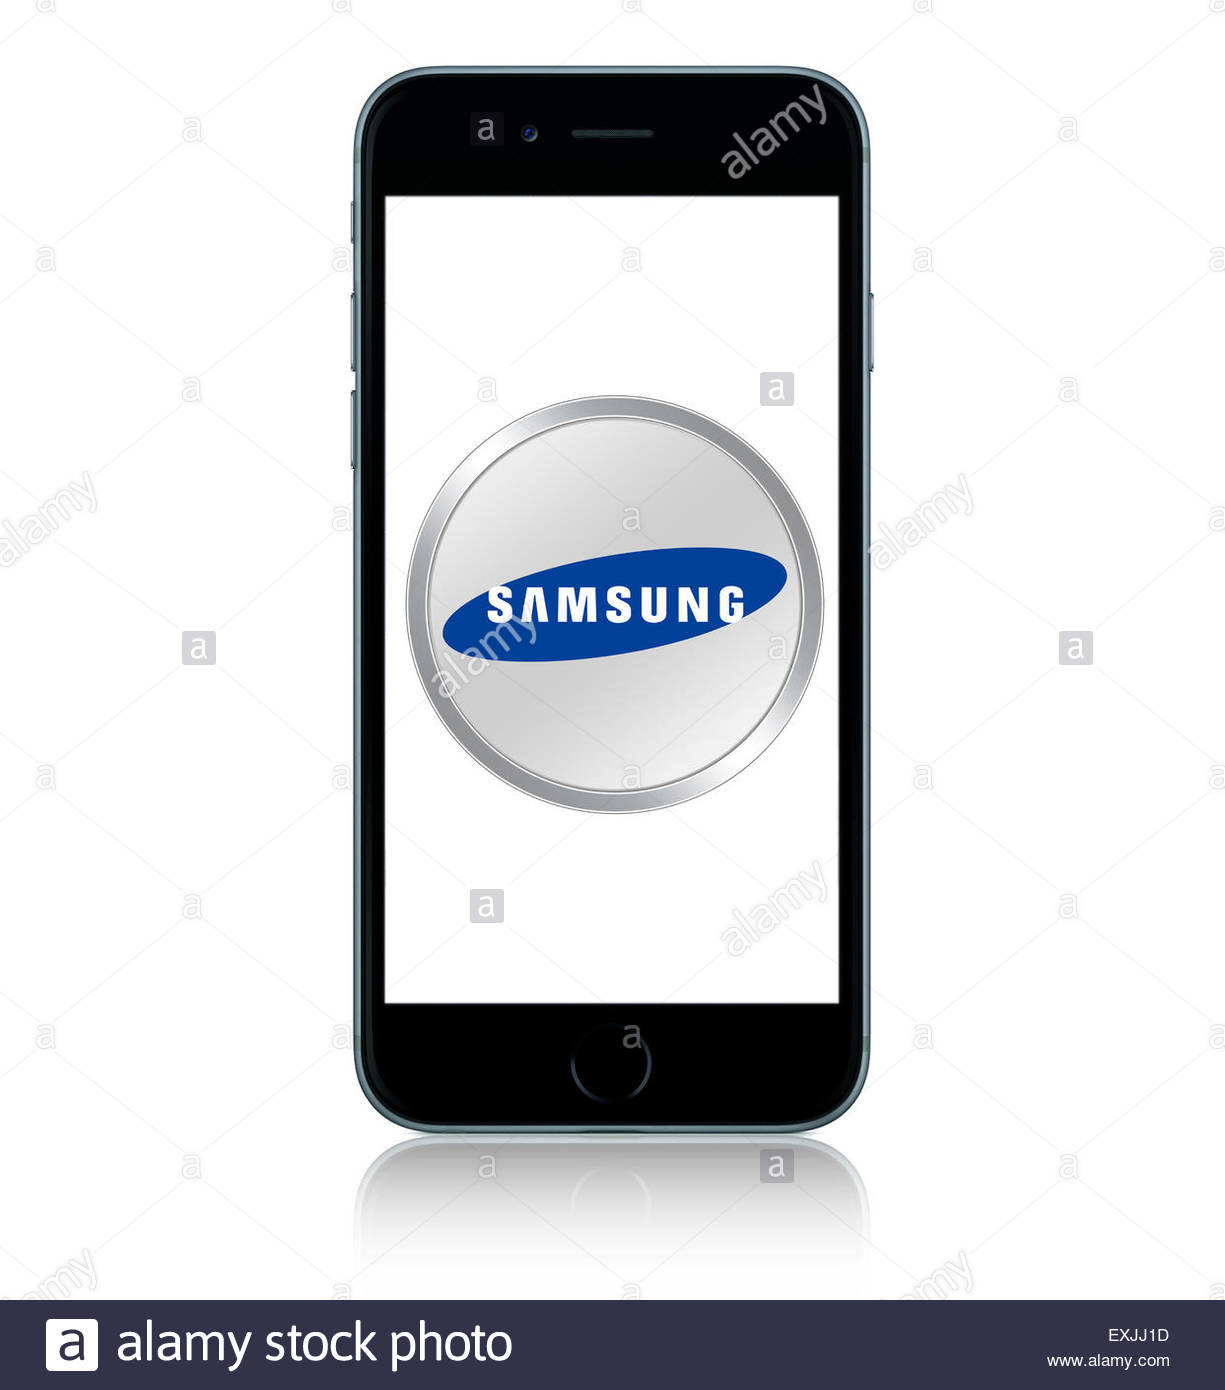 Apple Ihpone 6 with Samsung app icon logo - Stock Image